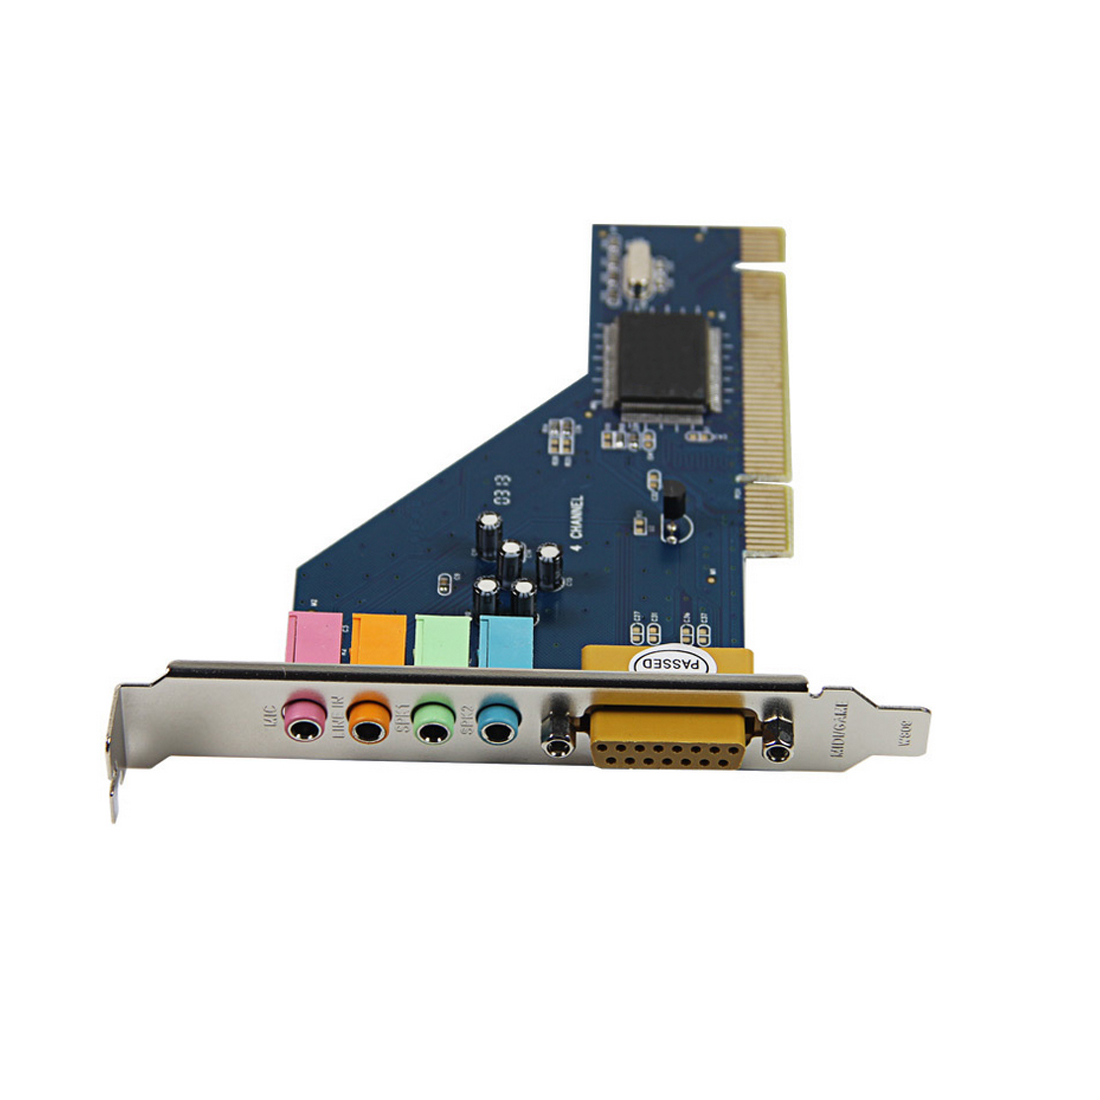 Etmakit Hot Sale High Quality 4 Channel 8738 Chip 3D Audio Stereo PCI Sound Card for Win7 64 Bit